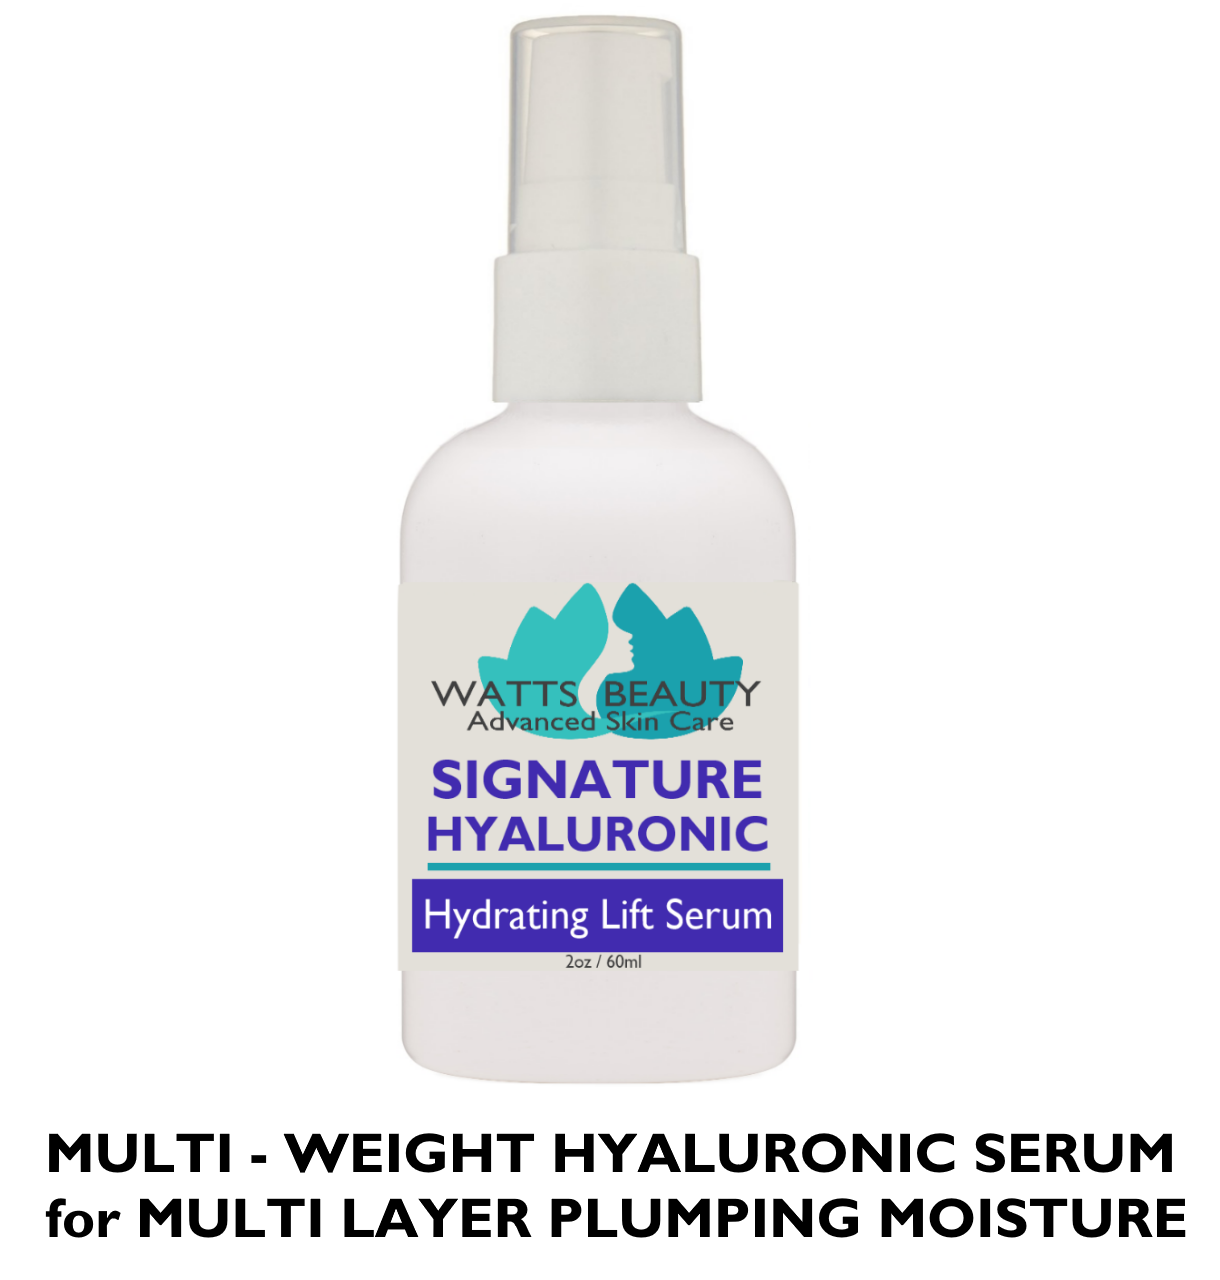 Multi Weight 1.5% Pure Hyaluronic Acid Serum Plumps Fine Lines and Wrinkles for Supple Skin that Bounces Back